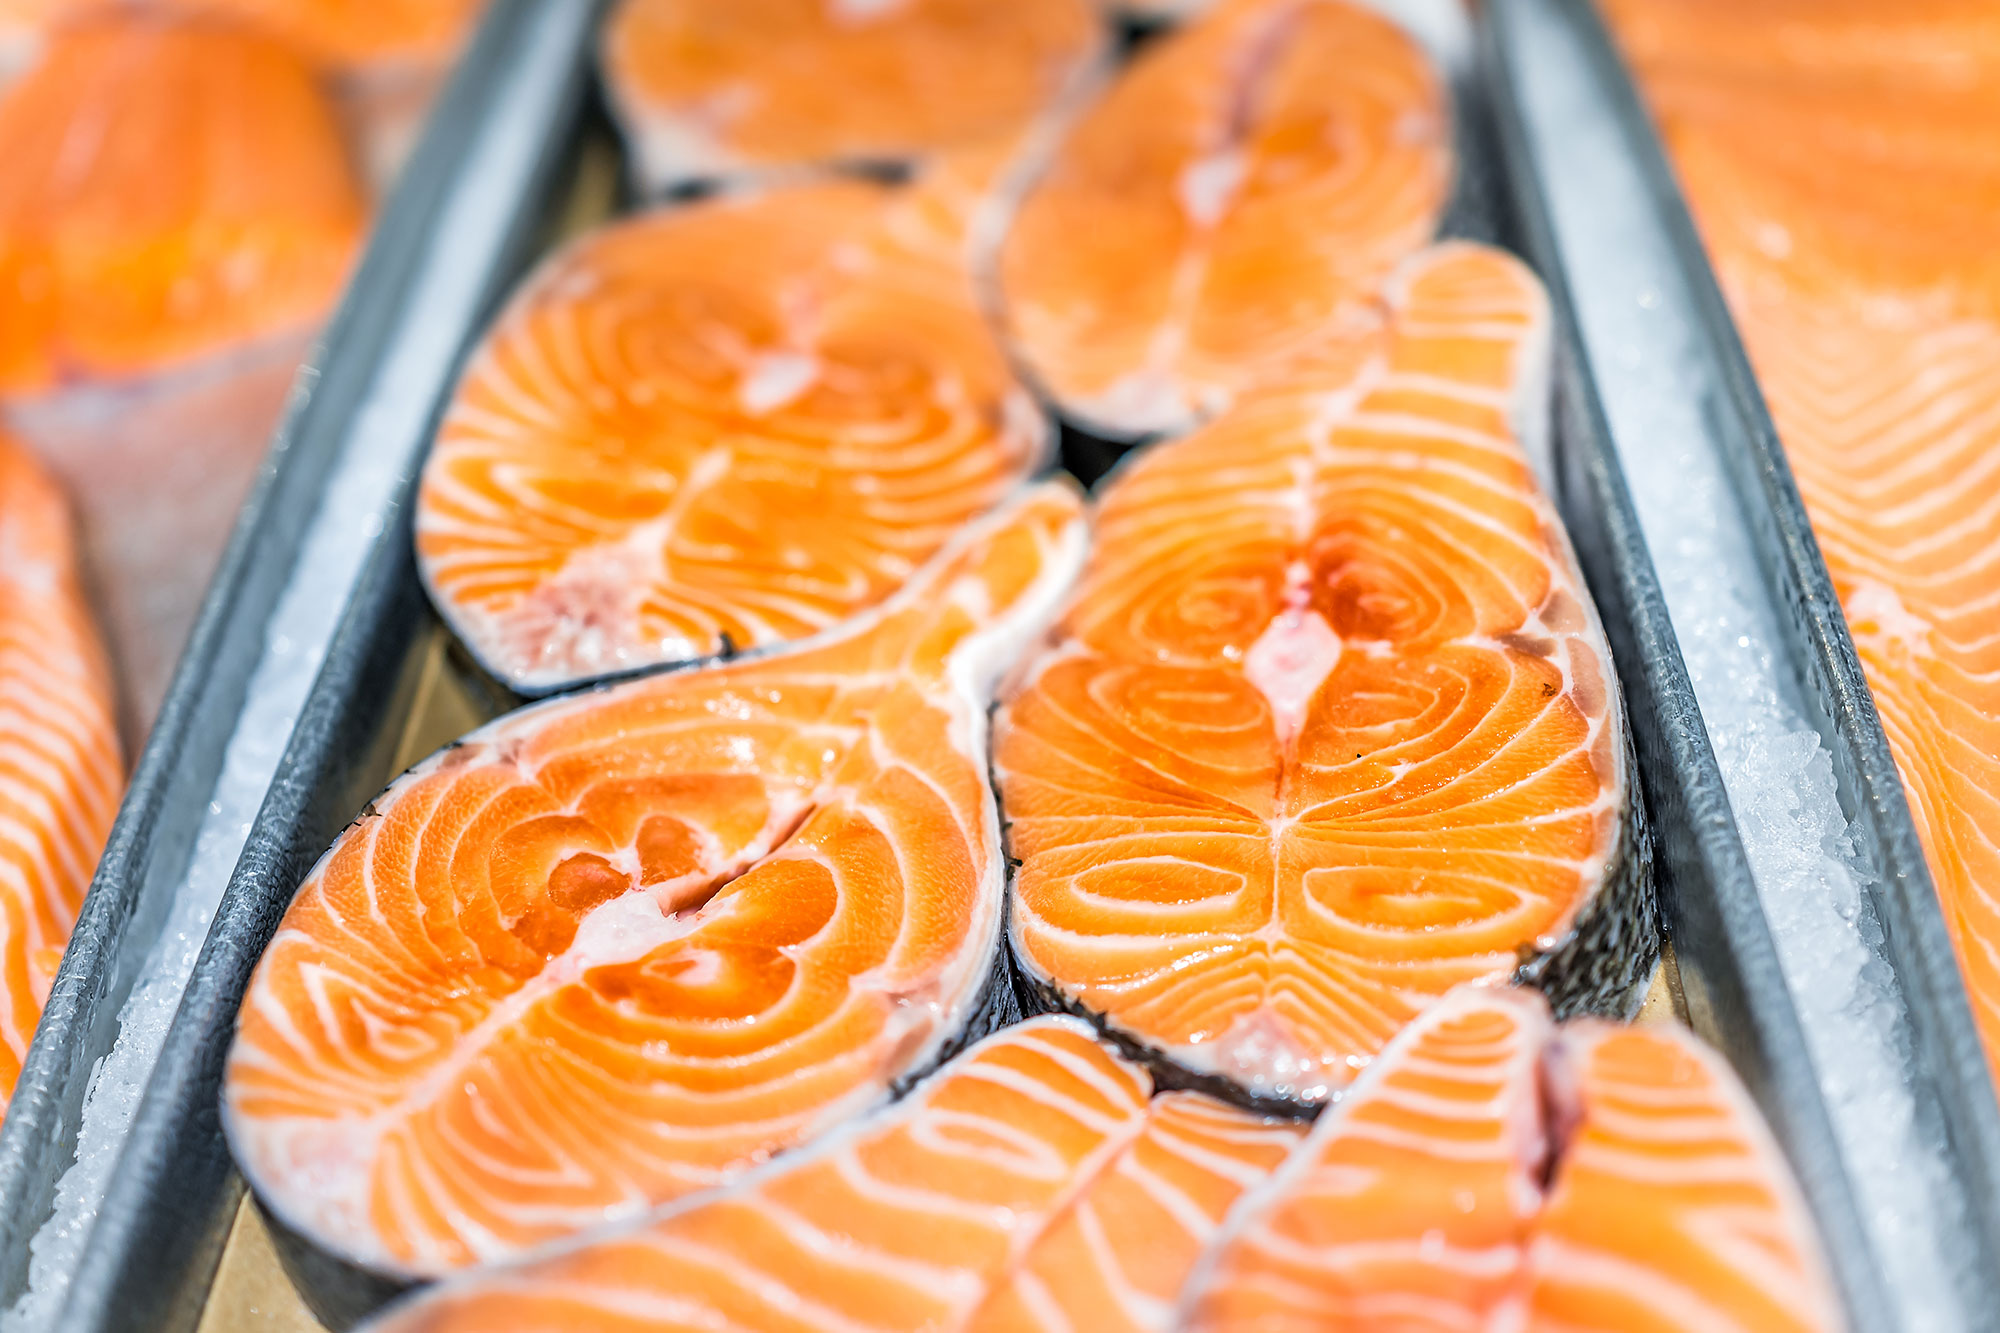 Closeup of many fresh selection salmon cut steaks fish in seafood market shop display tray orange large farm raised fat marbled